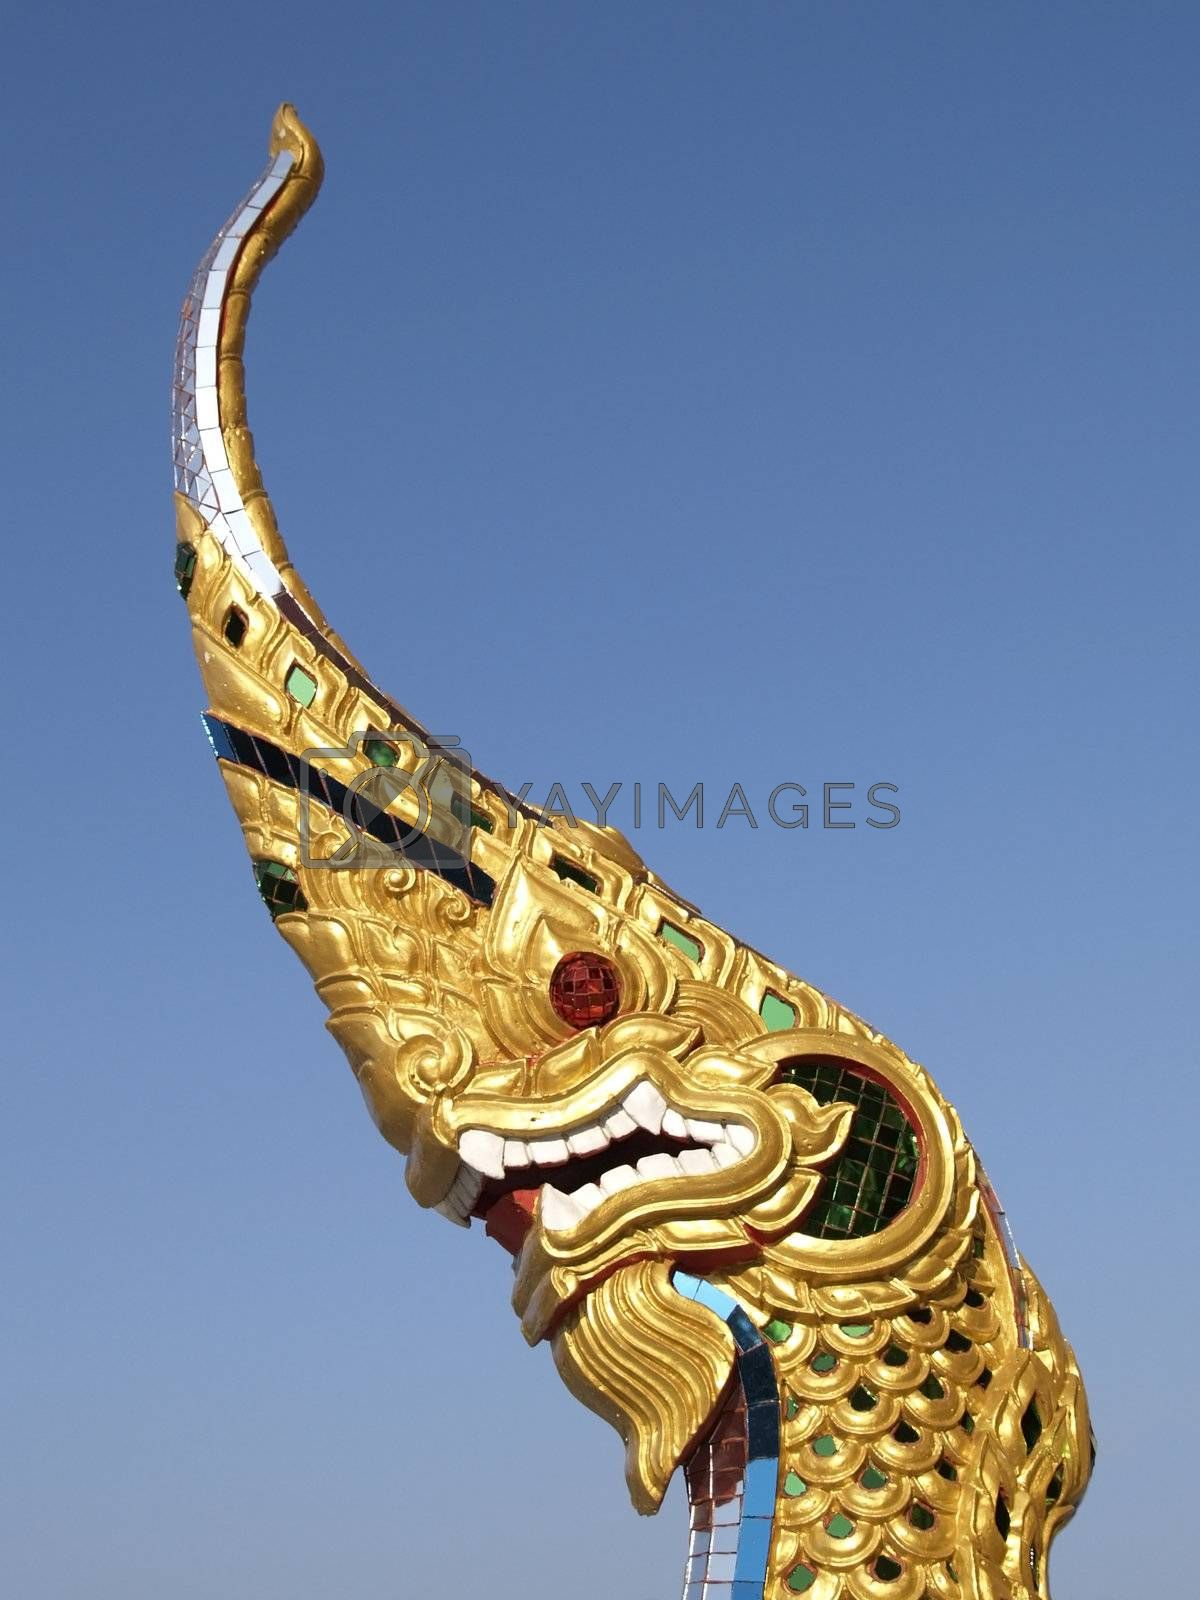 Dragon image from temple by epixx